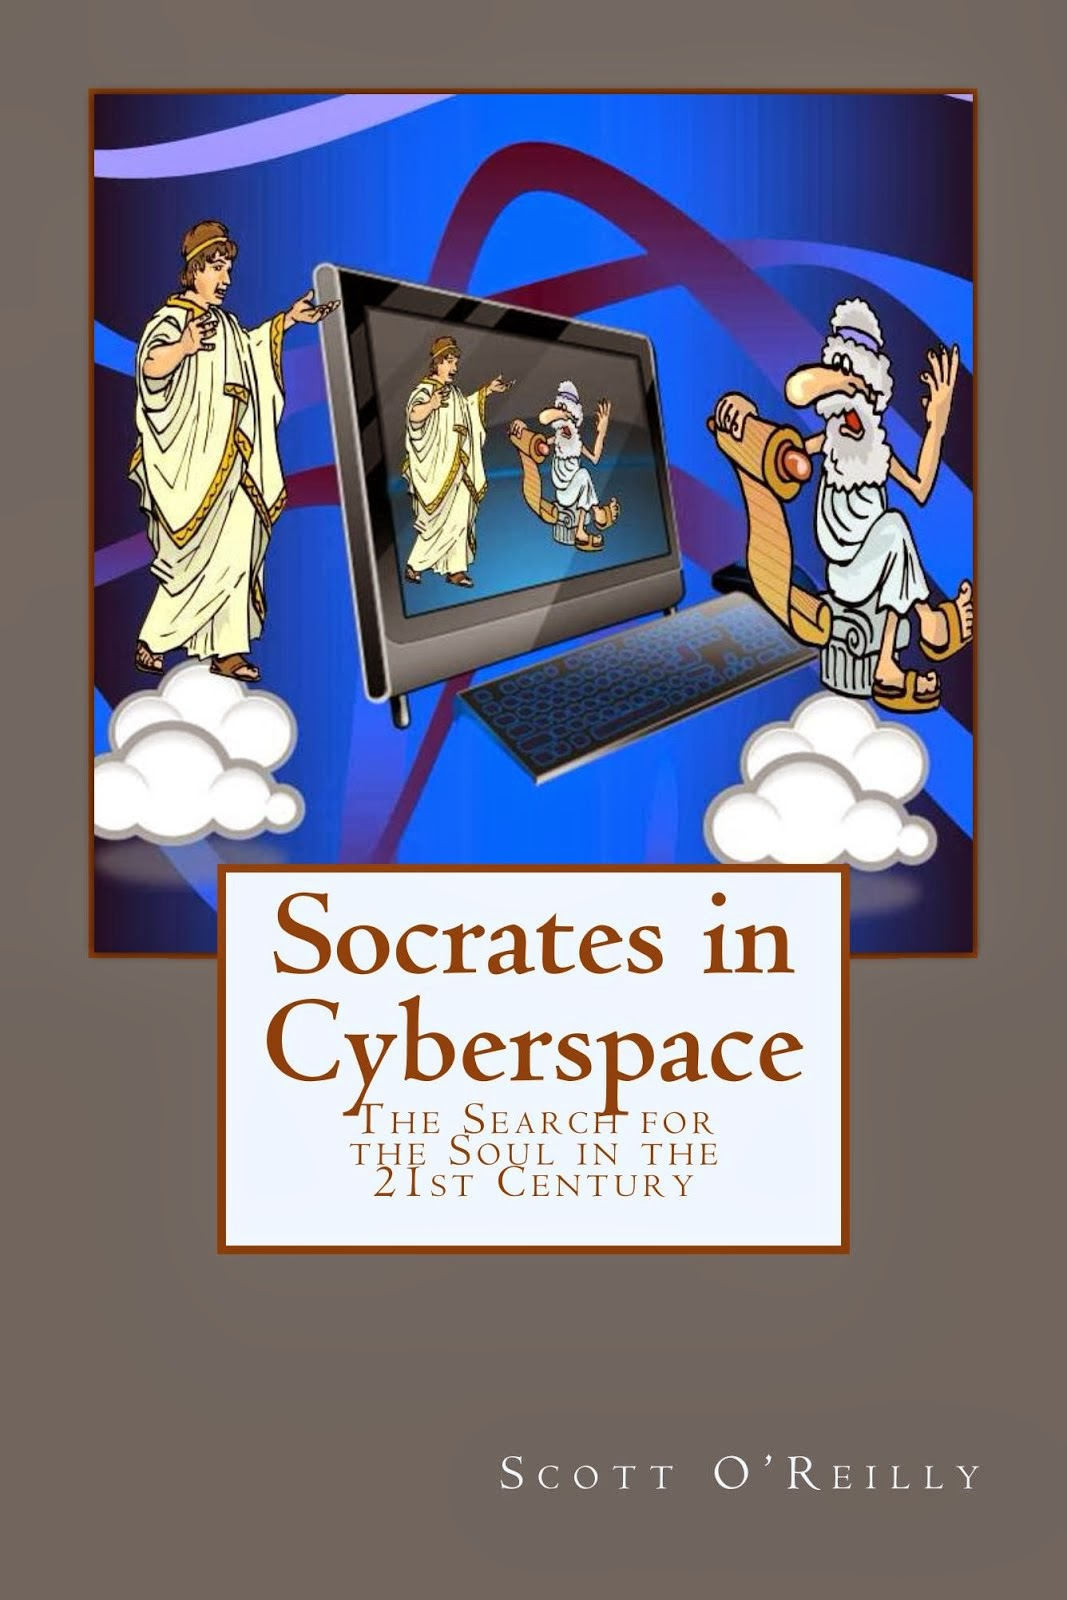 Socrates in Cyberspace